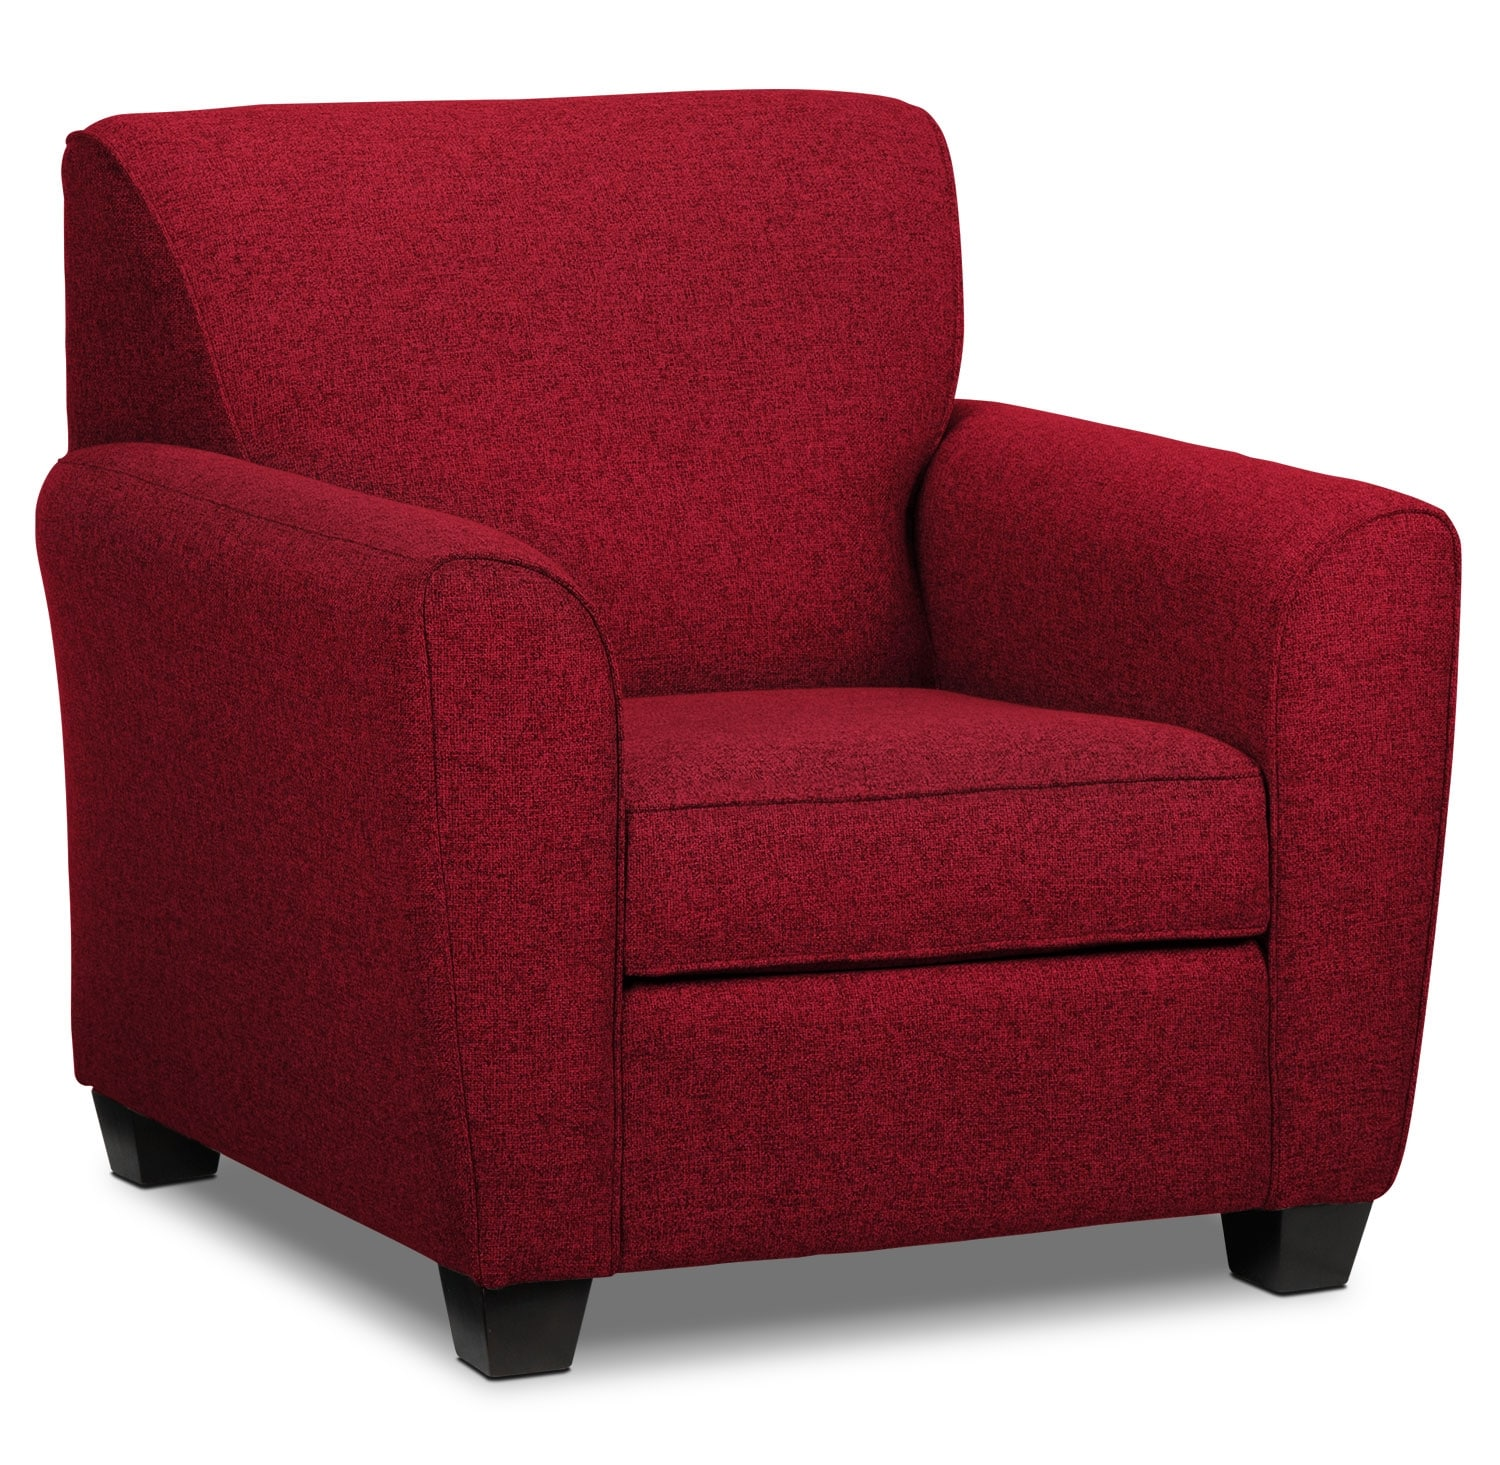 Living Room Furniture - Ashby Chair - Red